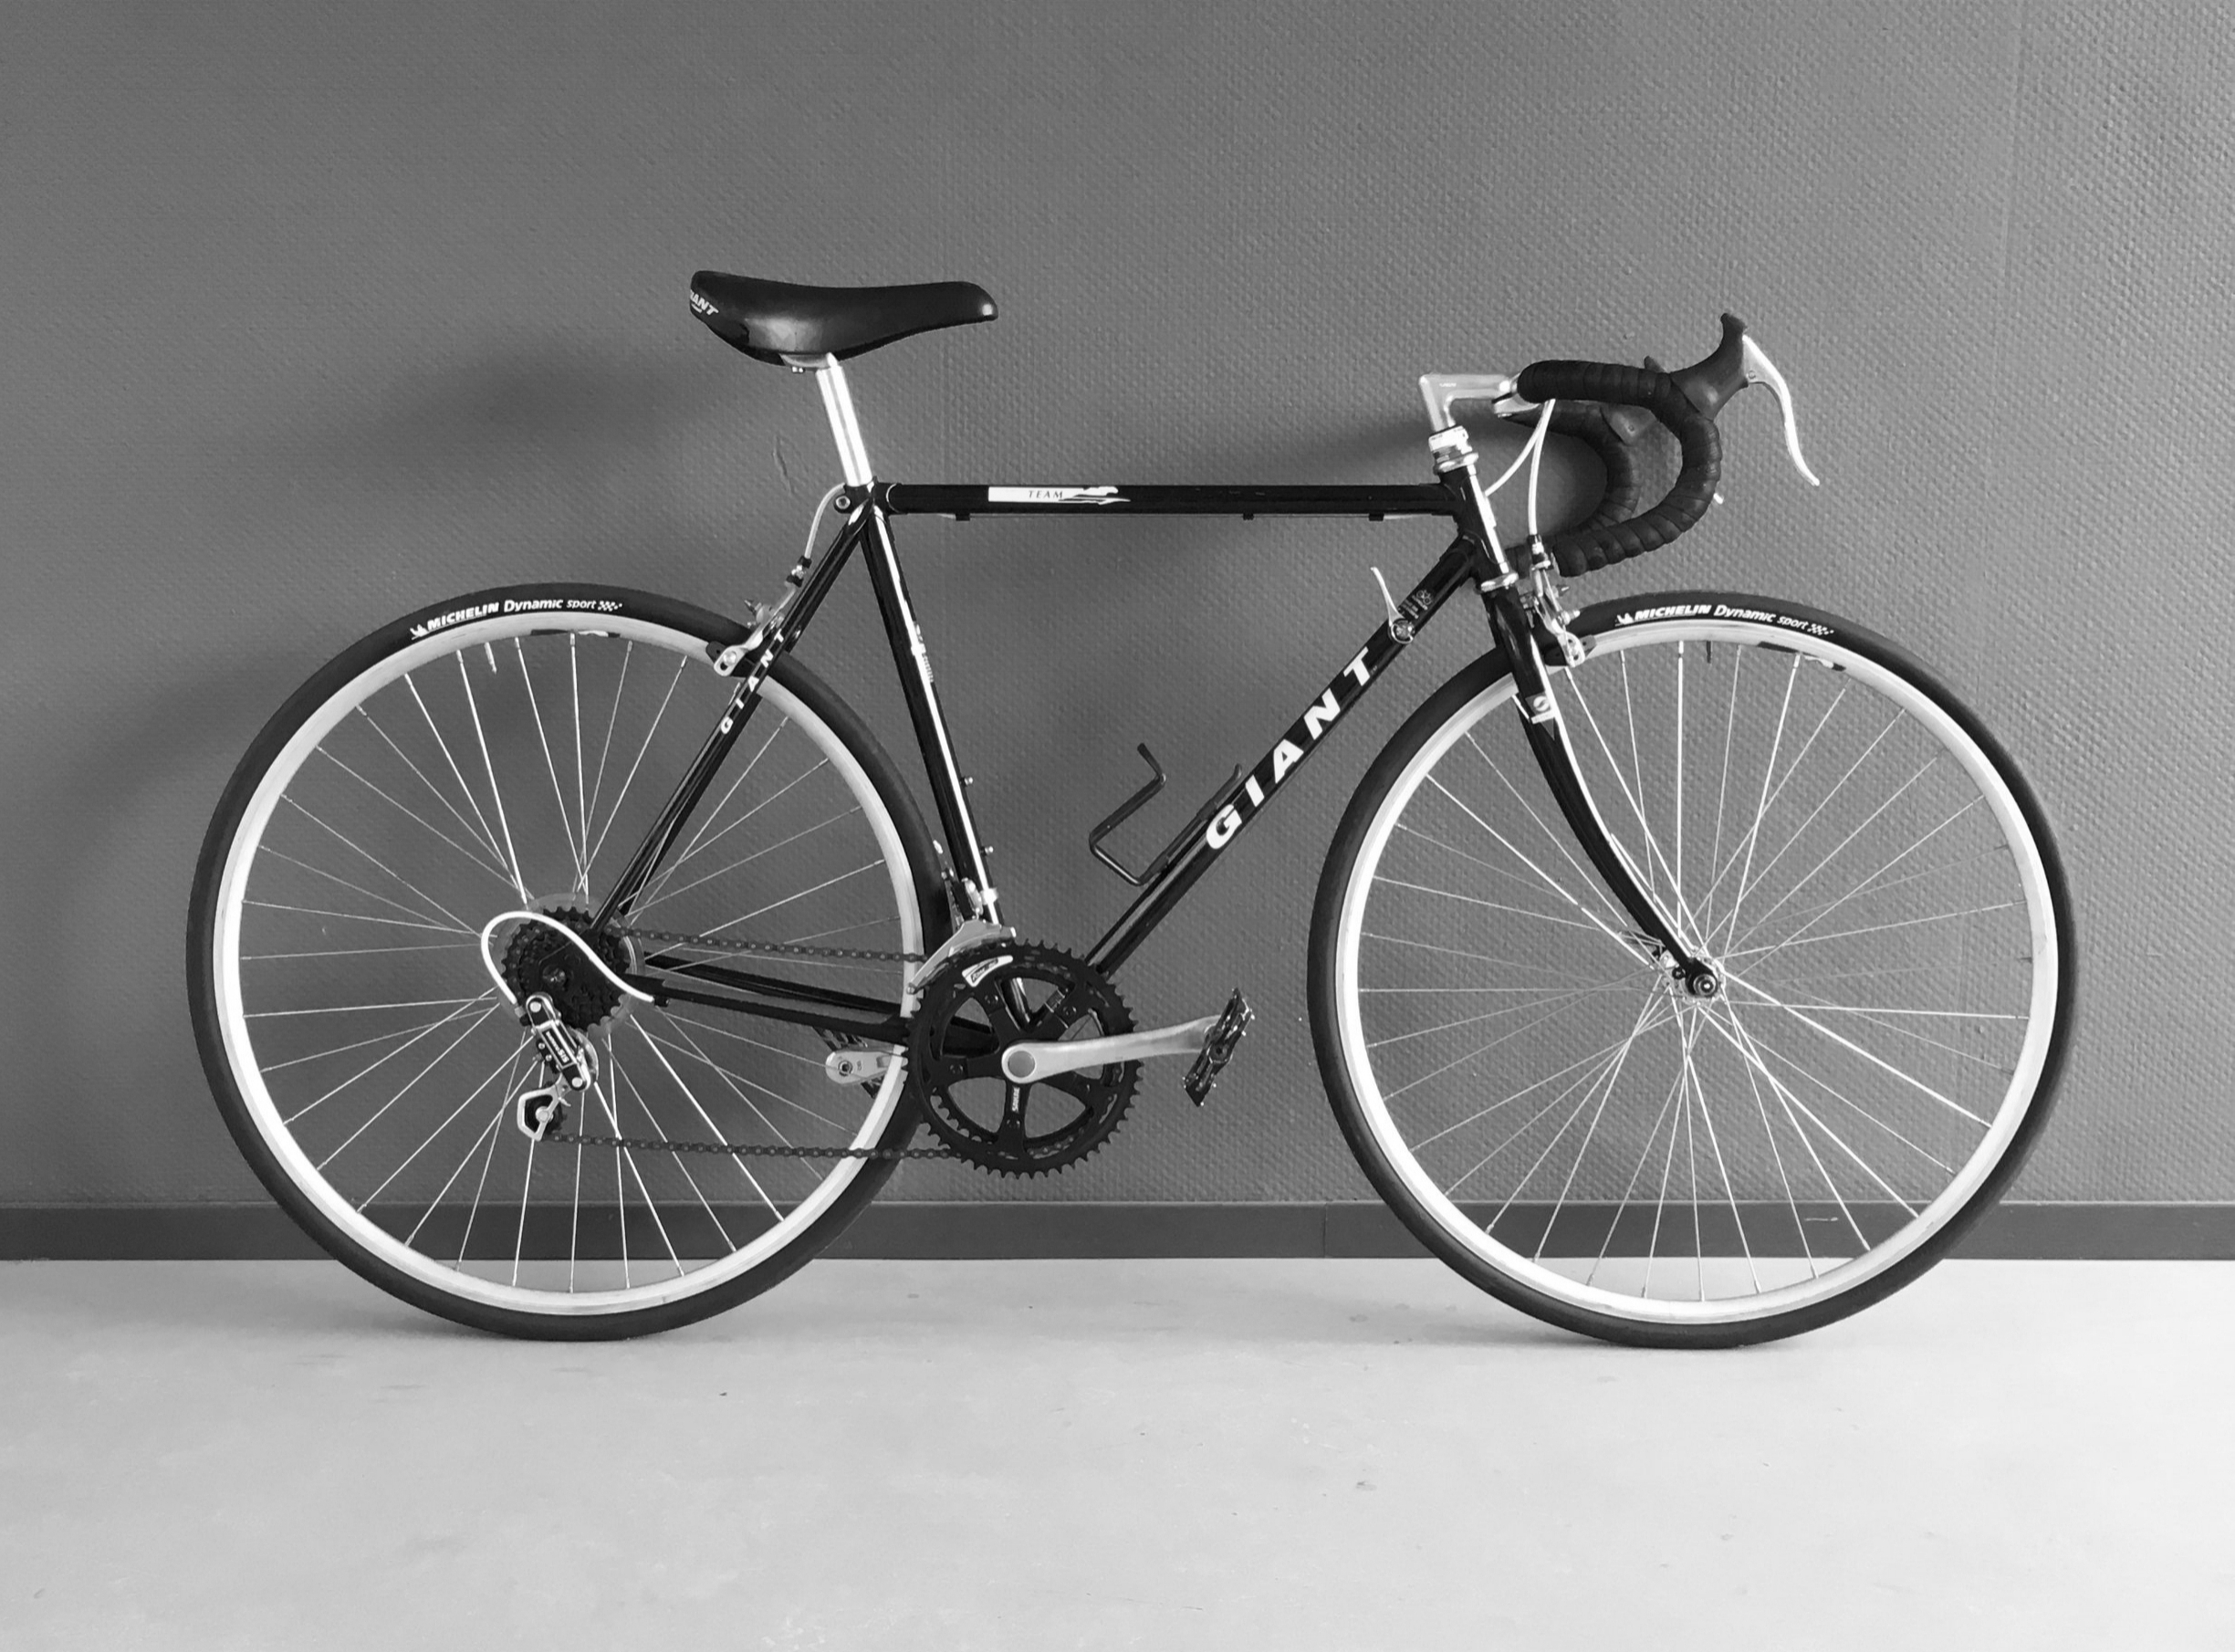 Giant racing/touring bike - SteelFrame height 52 cm[riders < 170cm]2x7speedNew Michelin tiresNew handlebar tapeBike is in mint condition.sold